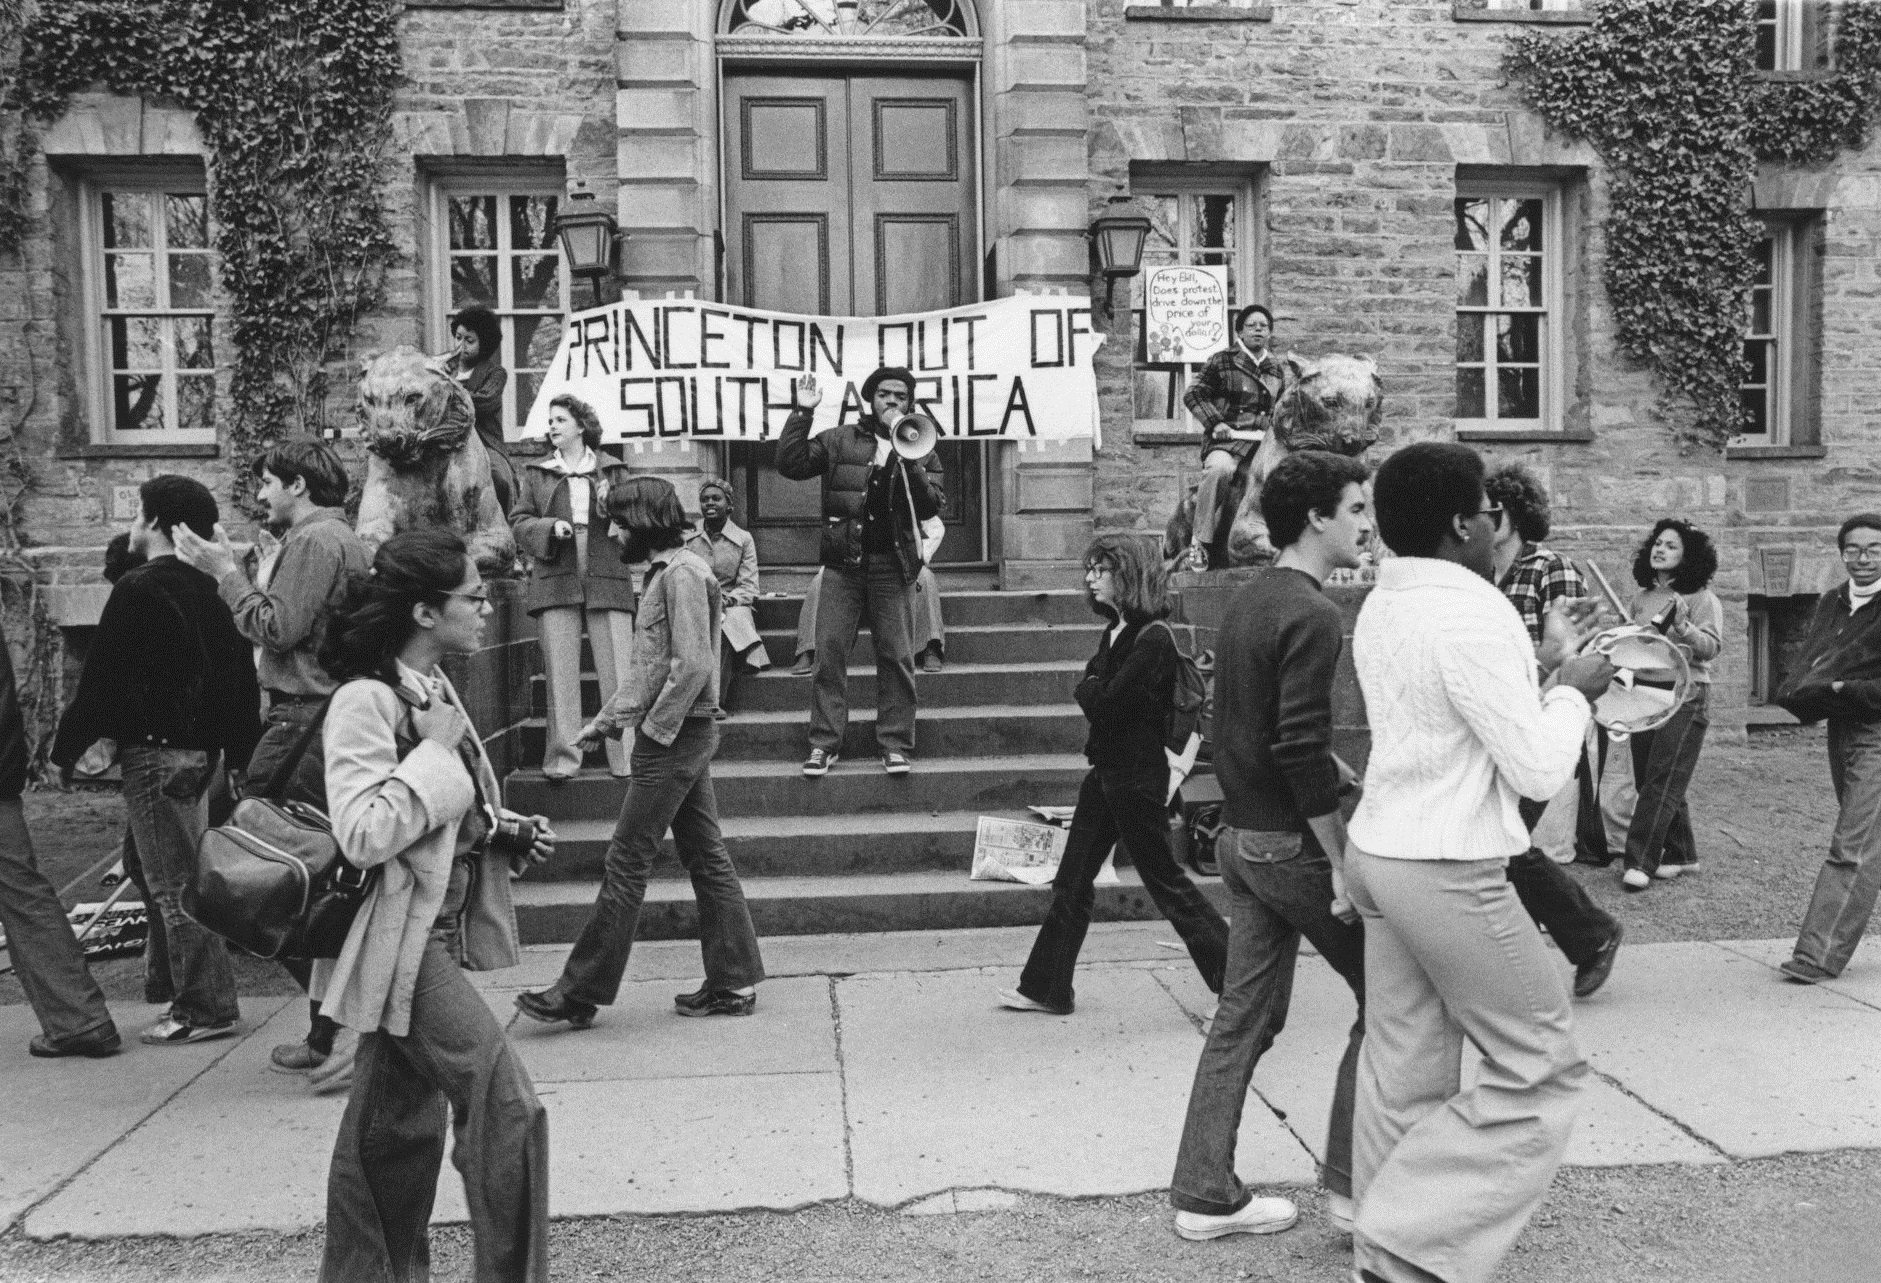 Nassau_Hall_Protest